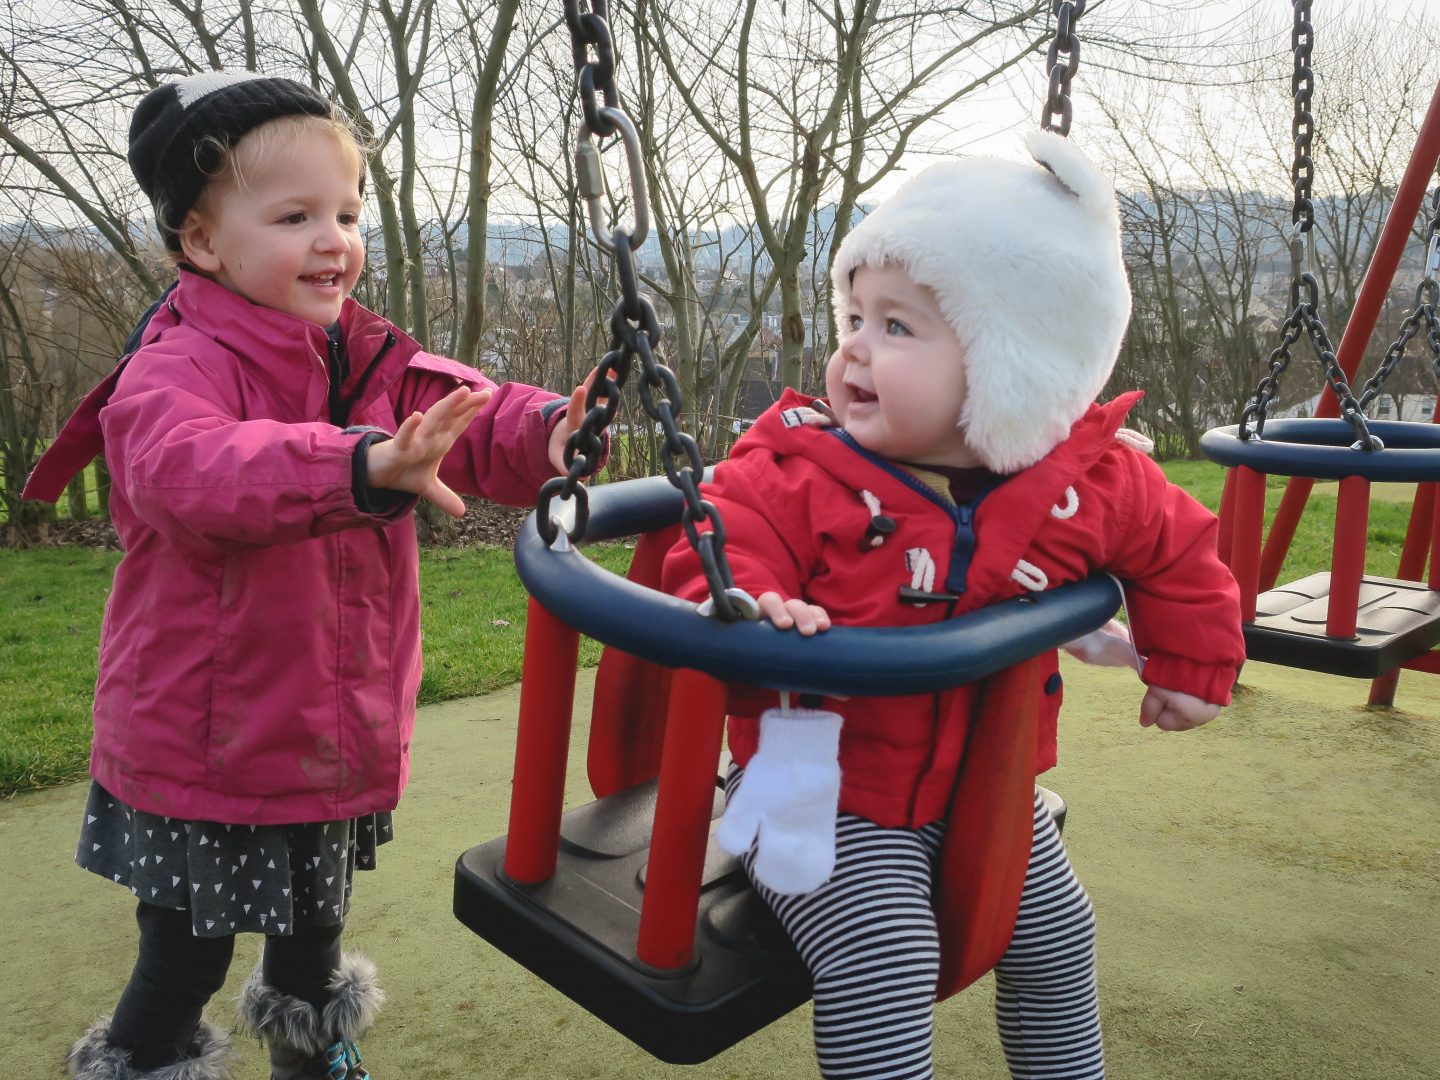 Toddler Pushing Baby on Swings